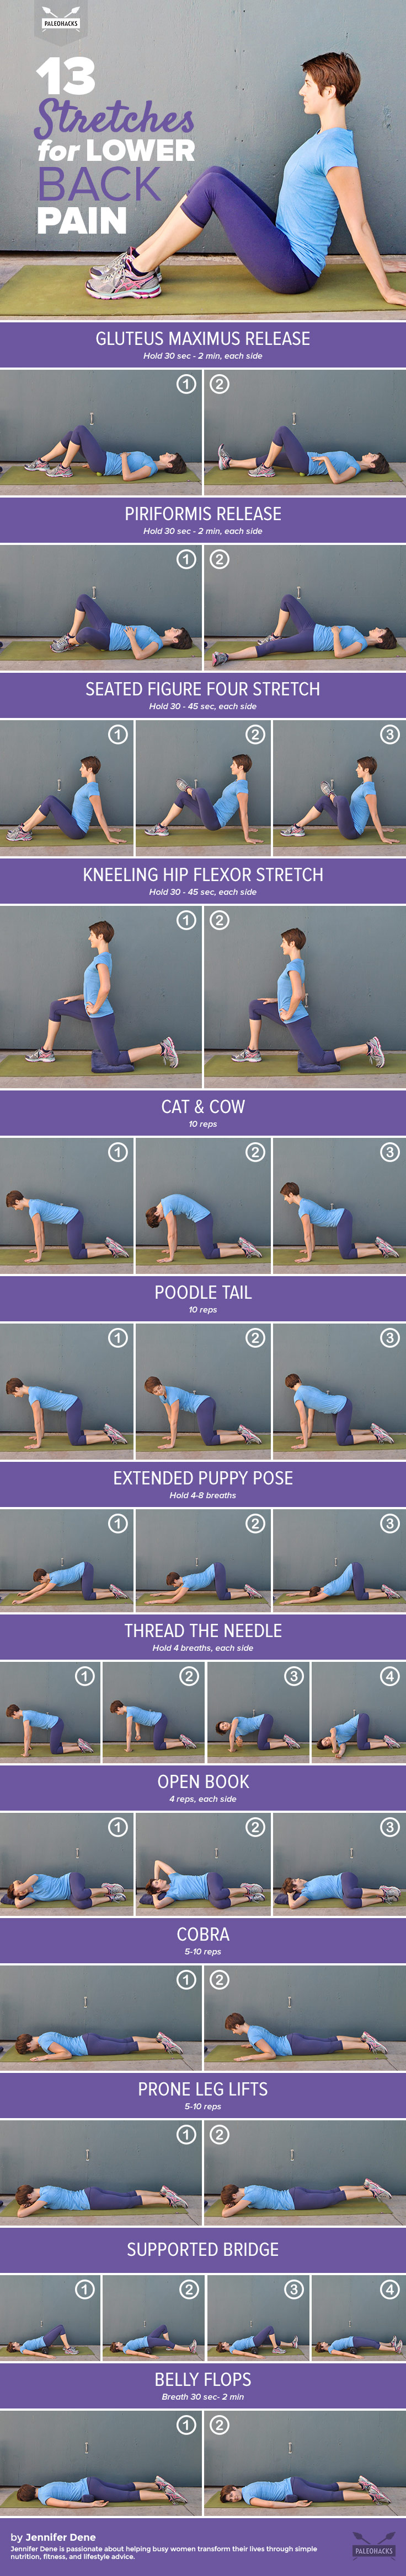 13-stretches-for-lower-back-pain-info